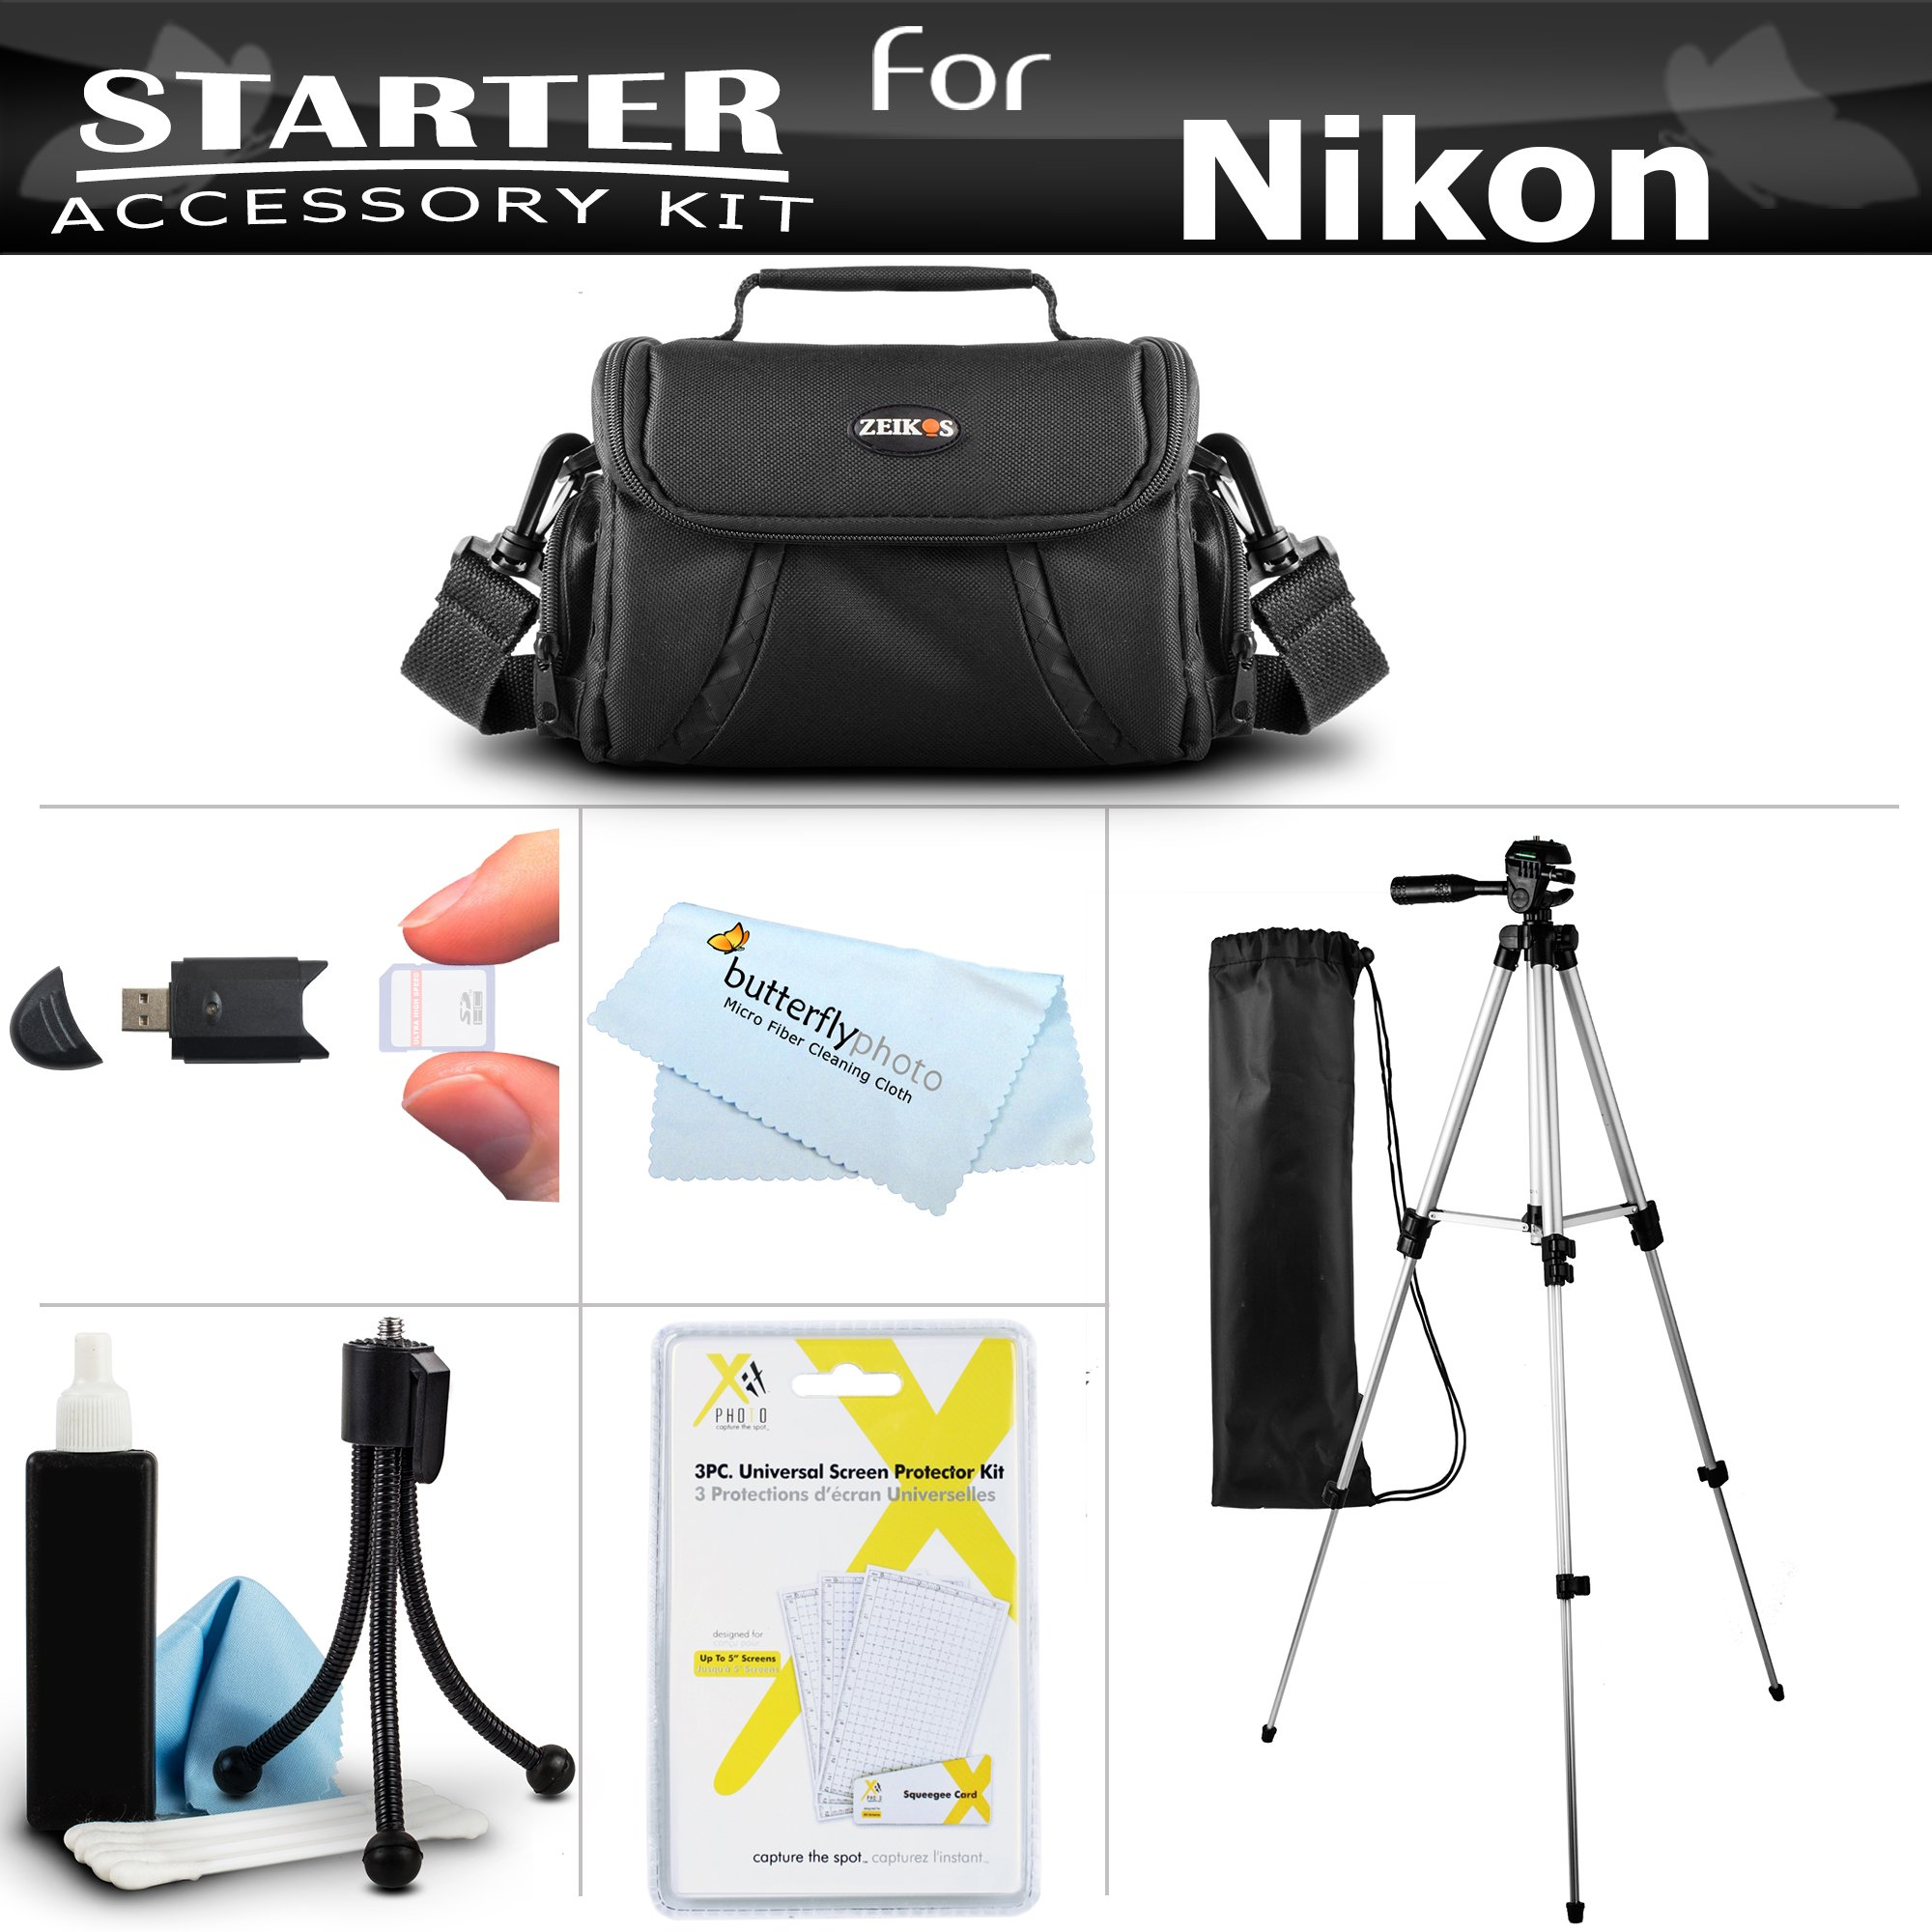 Accessory Starter Kit For The Nikon Coolpix B500, L330, L340, L310, L810 L820, L620, L830, L840 Digital Camera Includes Deluxe Carrying Case + 50 Tripod w/Case + Screen Protectors + Mini Tripod + More by ButterflyPhoto